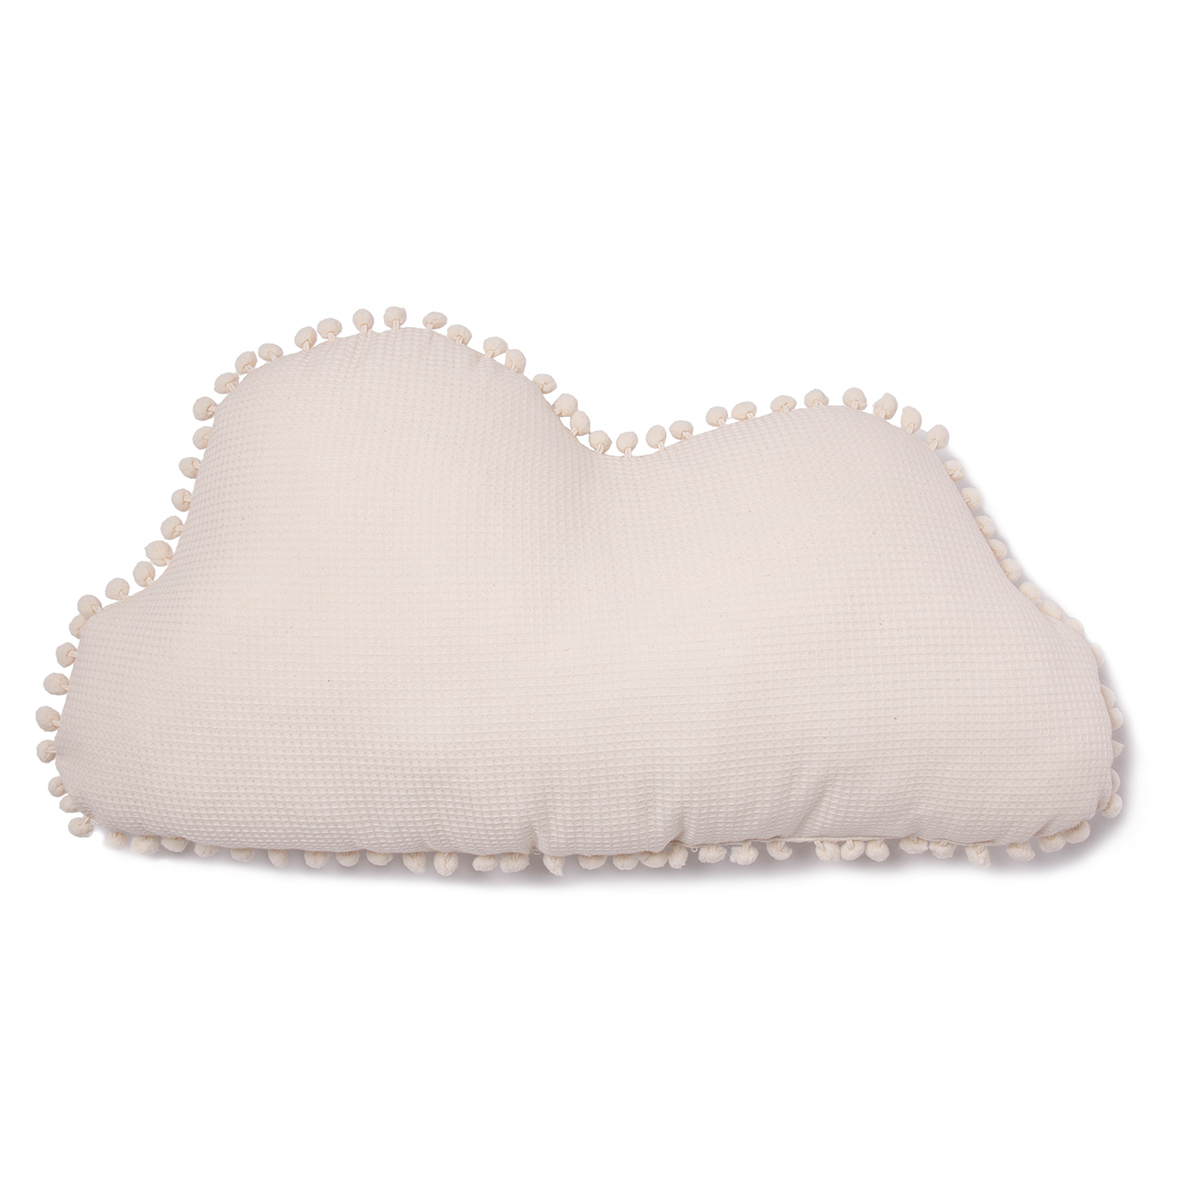 Coussin Coussin Nuage Marshmallow - Natural Coussin Nuage Marshmallow - Natural